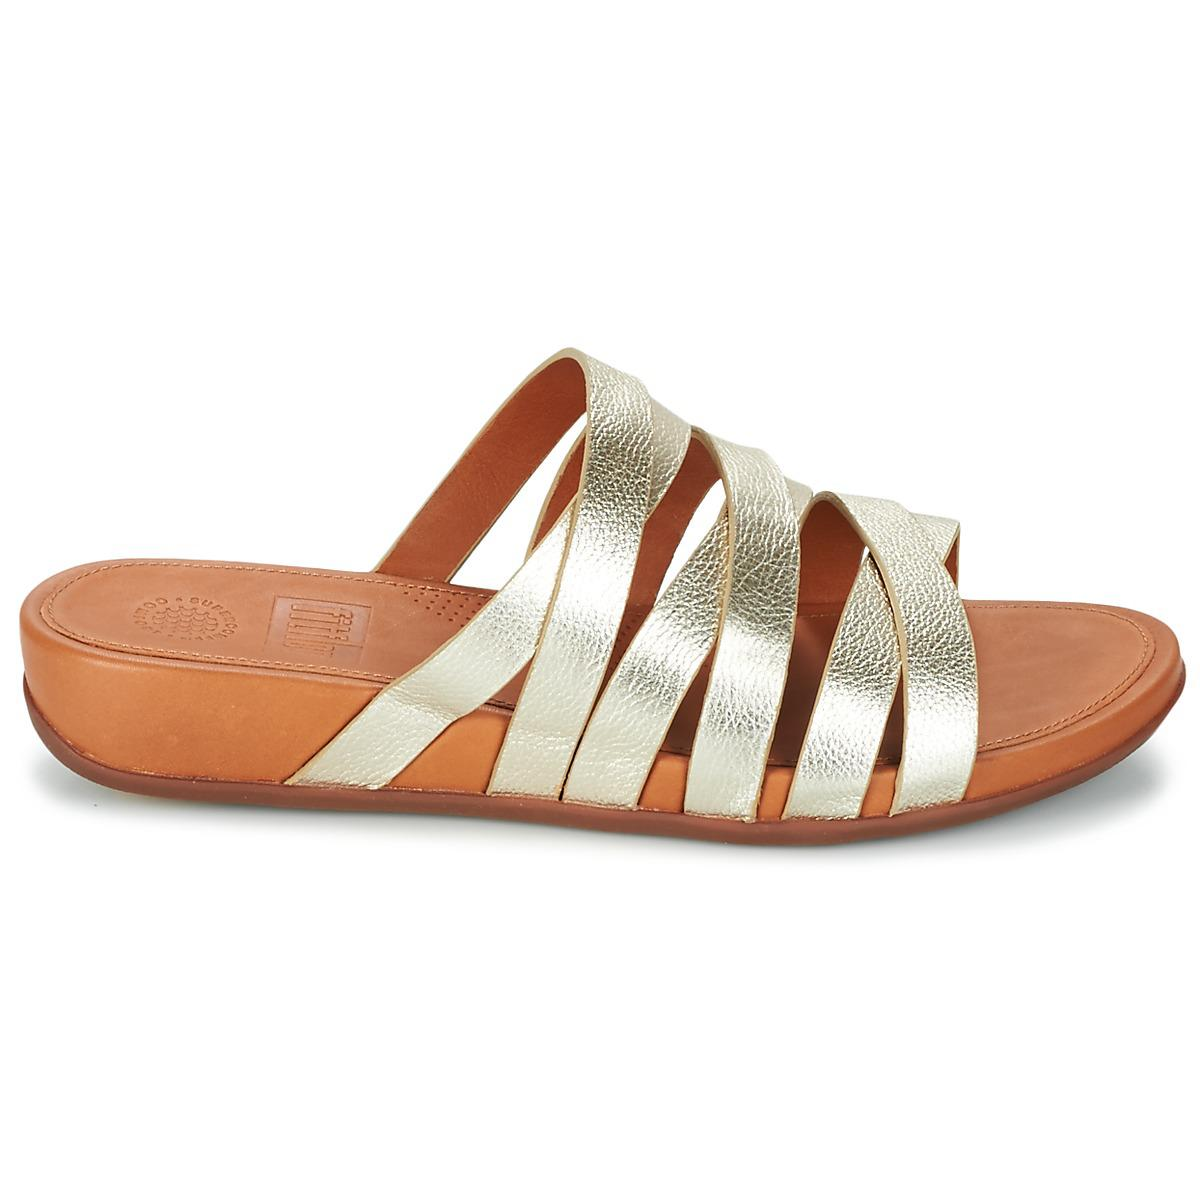 036a09d17 Fitflop Lumy Leather Slide Women s Mules   Casual Shoes In Gold in ...